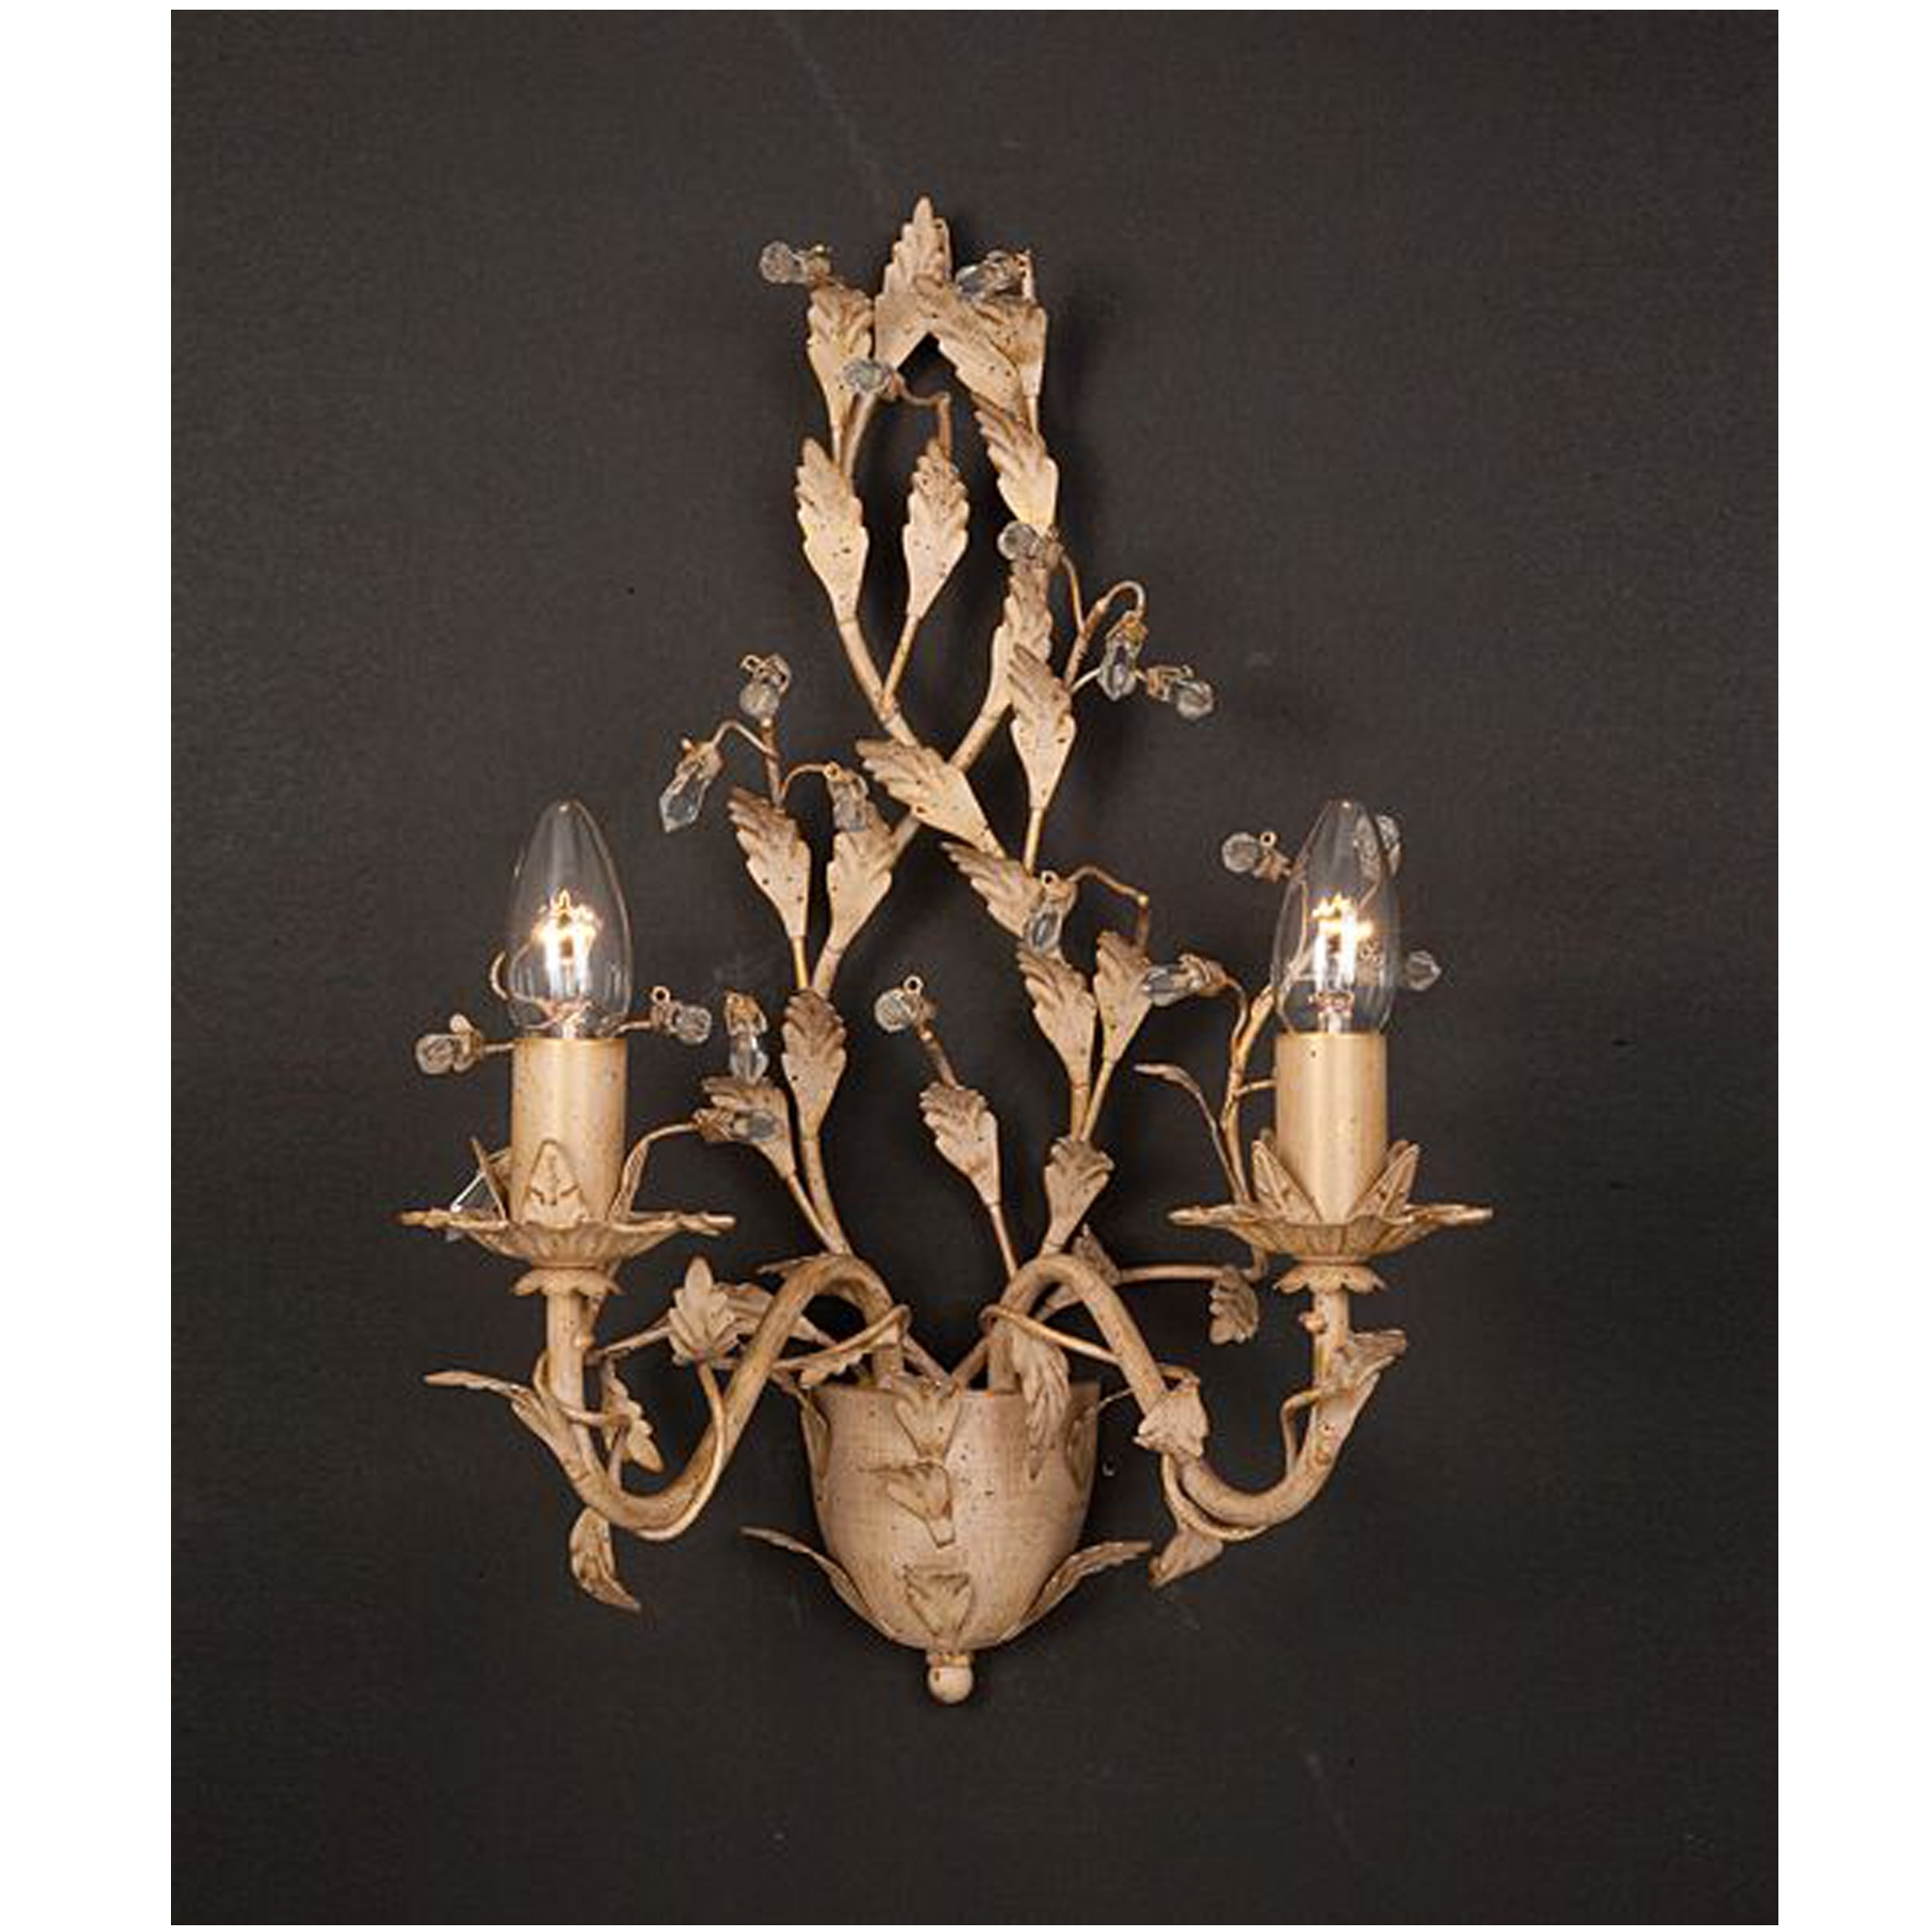 Vintage Gold Wall Lights : Antique French Style Cream & Gold Wall Light - French Lighting from Homesdirect 365 UK